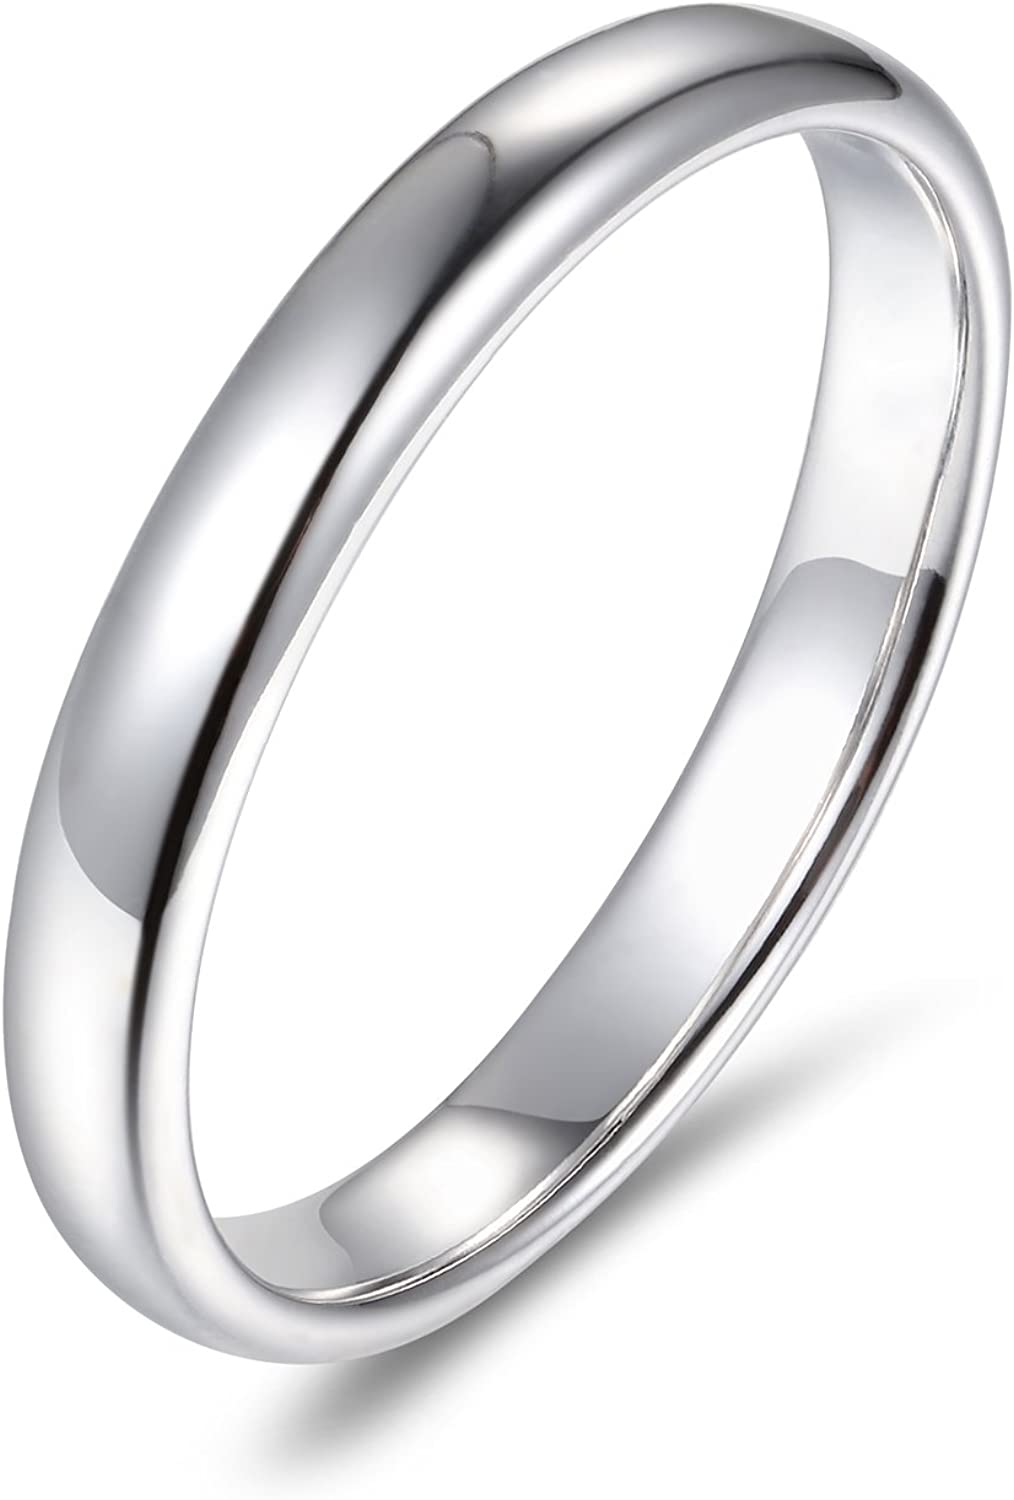 Max 85% OFF Lamrowfay Plain Comfort-fit Weekly update 14K 3mm Wedding Gold Band